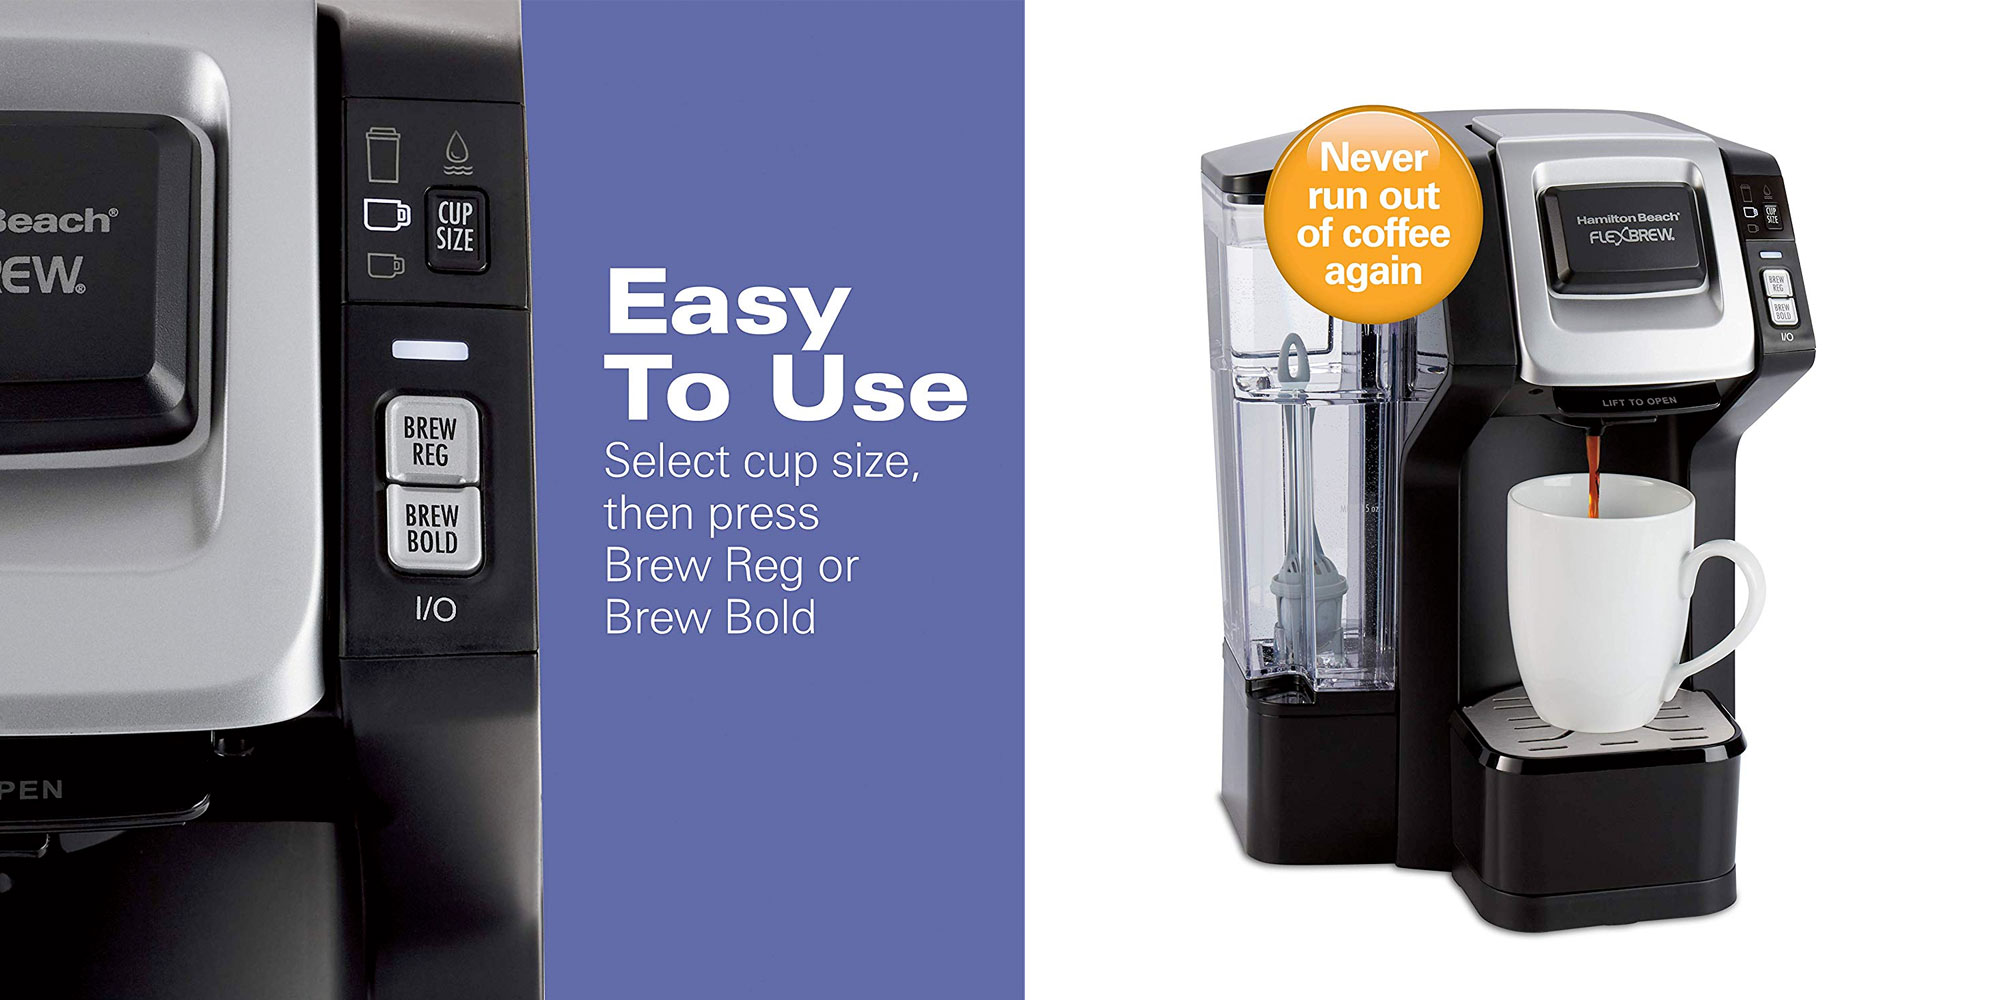 Enjoy K-Cups or your grounds w/ Hamilton Beach's FlexBrew connected brewer: $50 (Reg. $90)